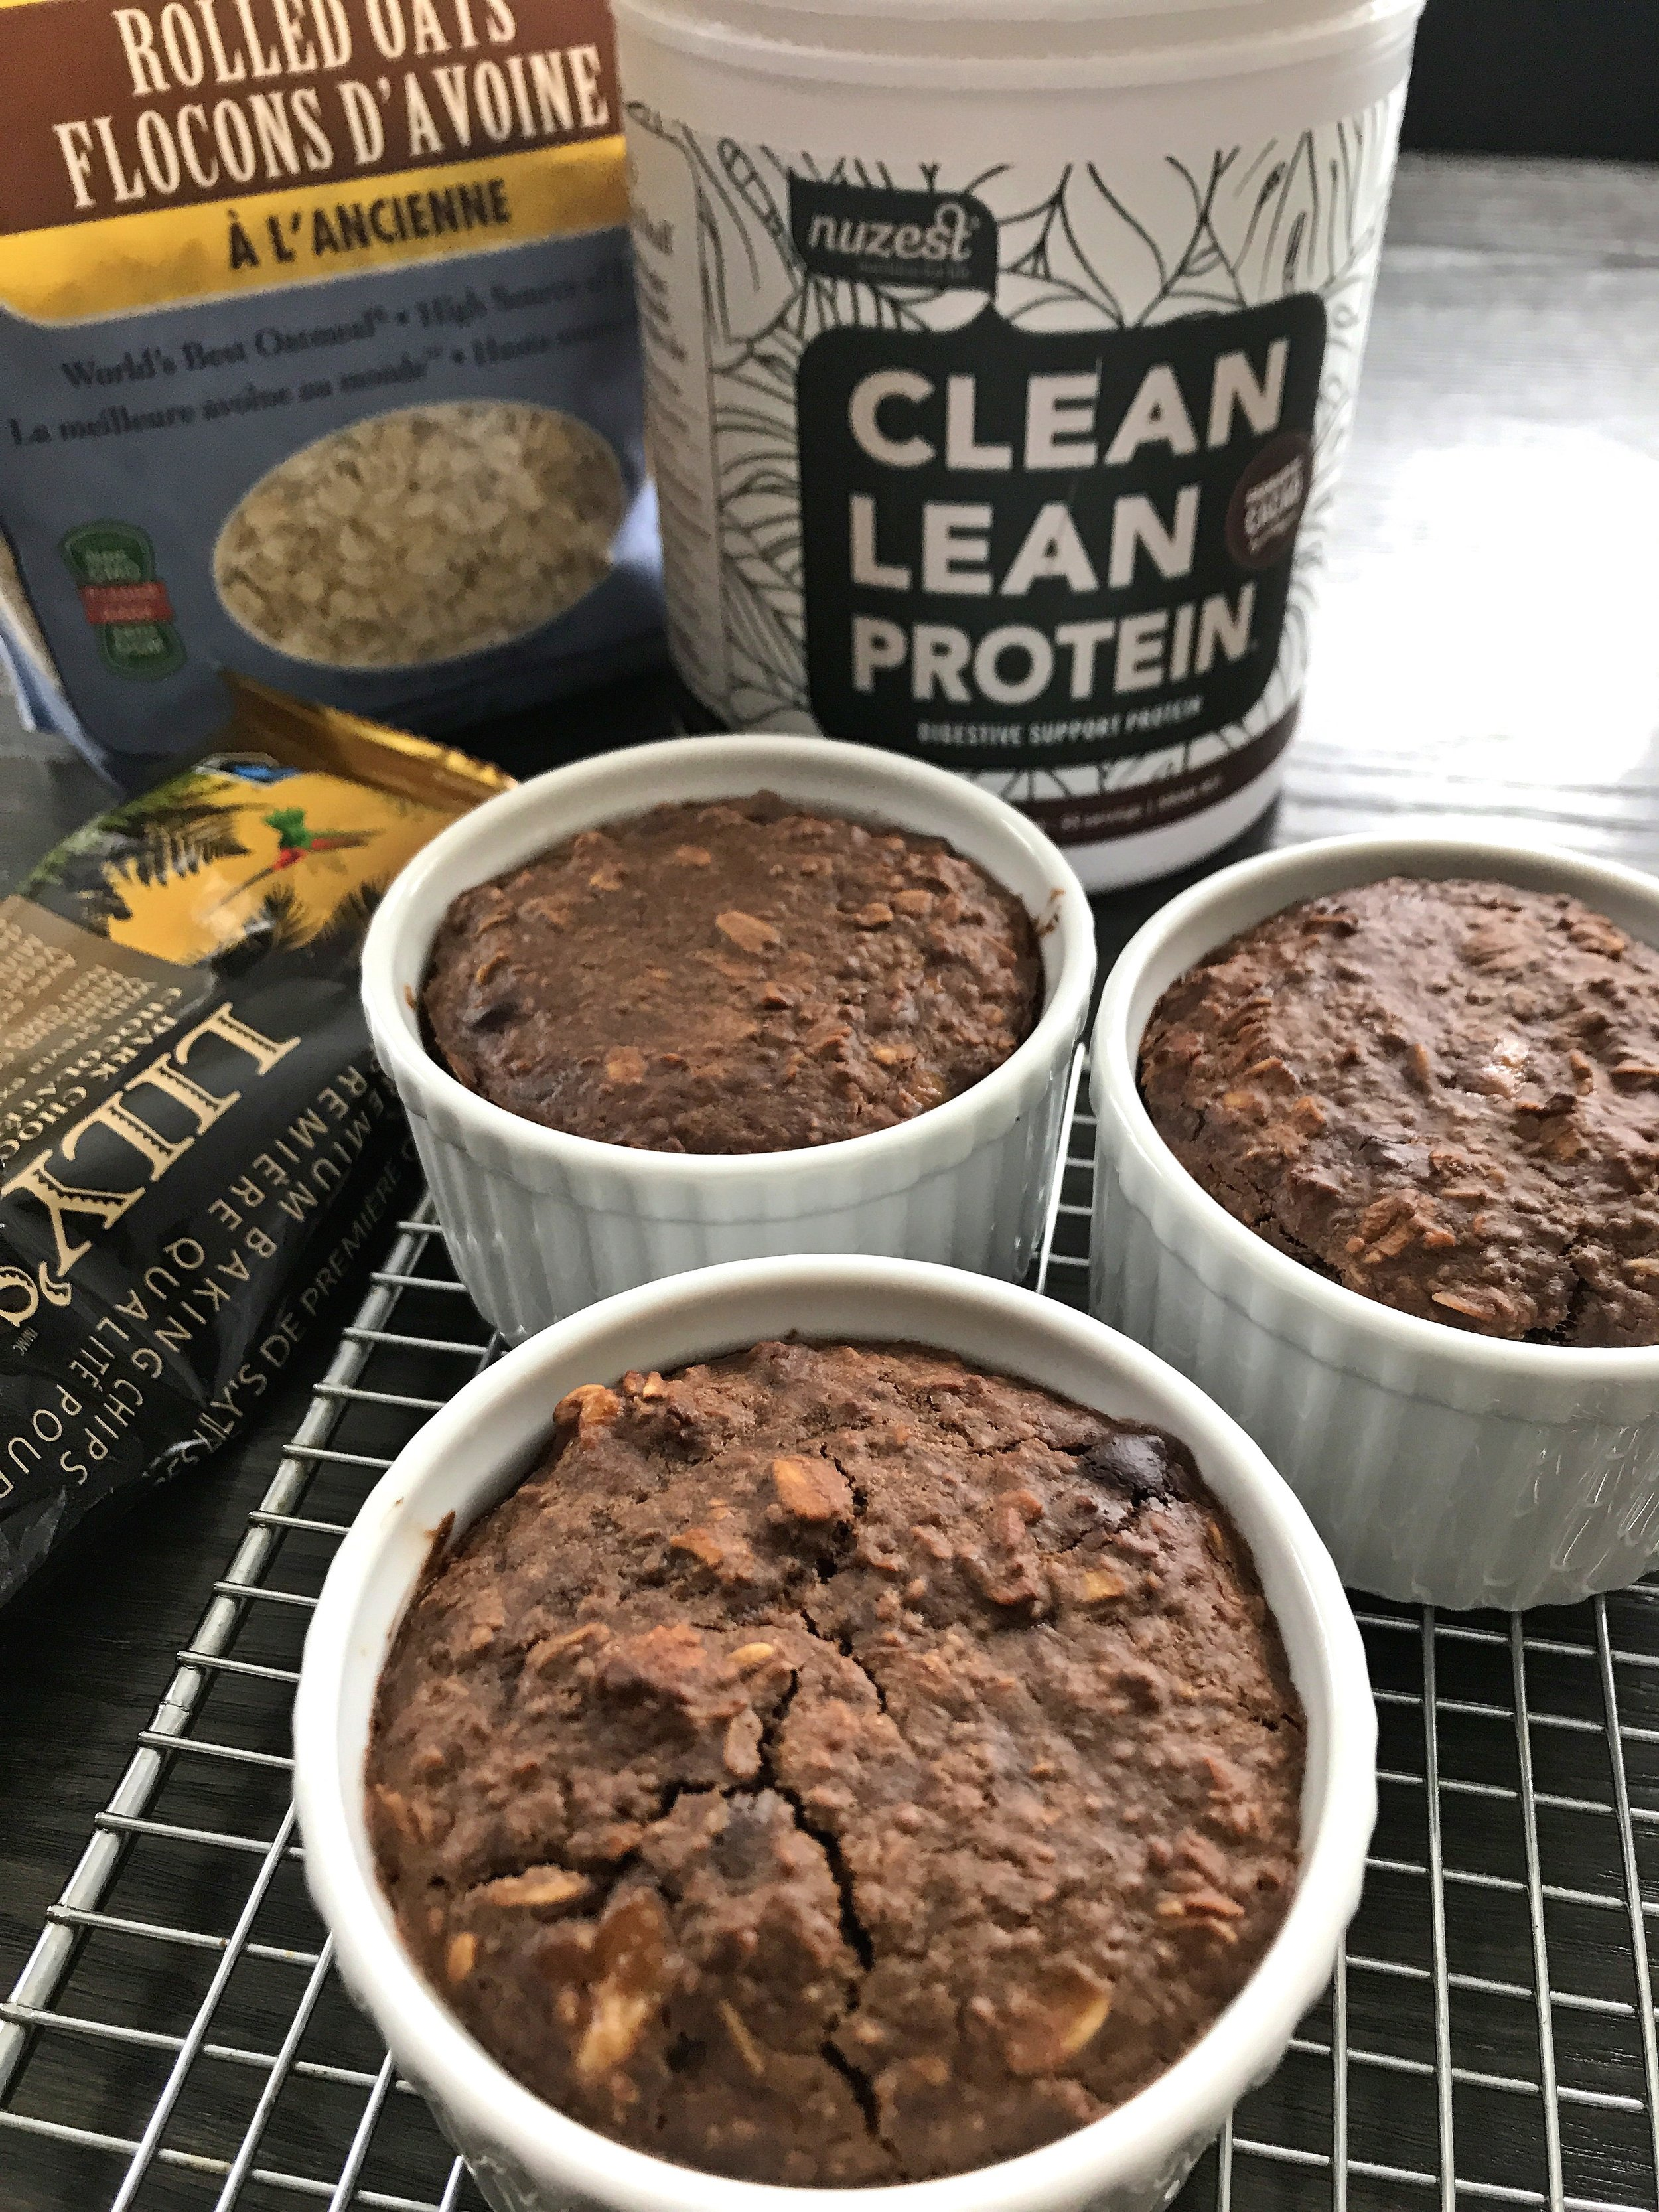 CHOCOLATE BANANA BAKED OATS INGREDIENTS.jpg